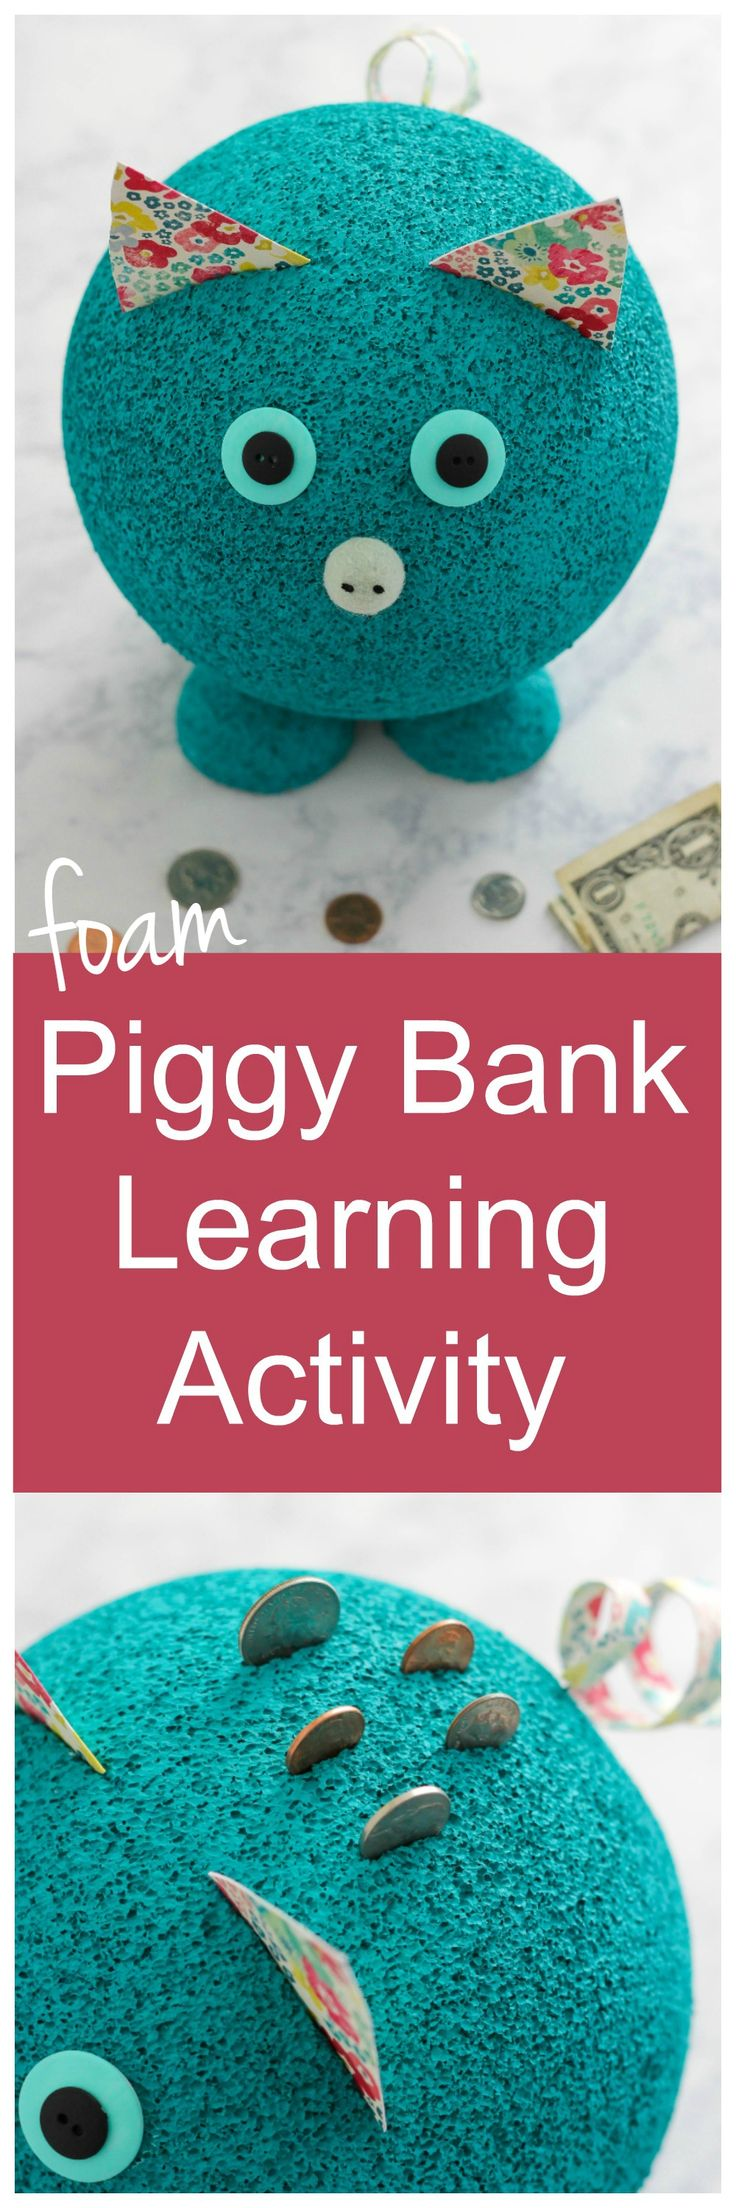 17 Best Ideas About Homemade Piggy Banks On Pinterest ...